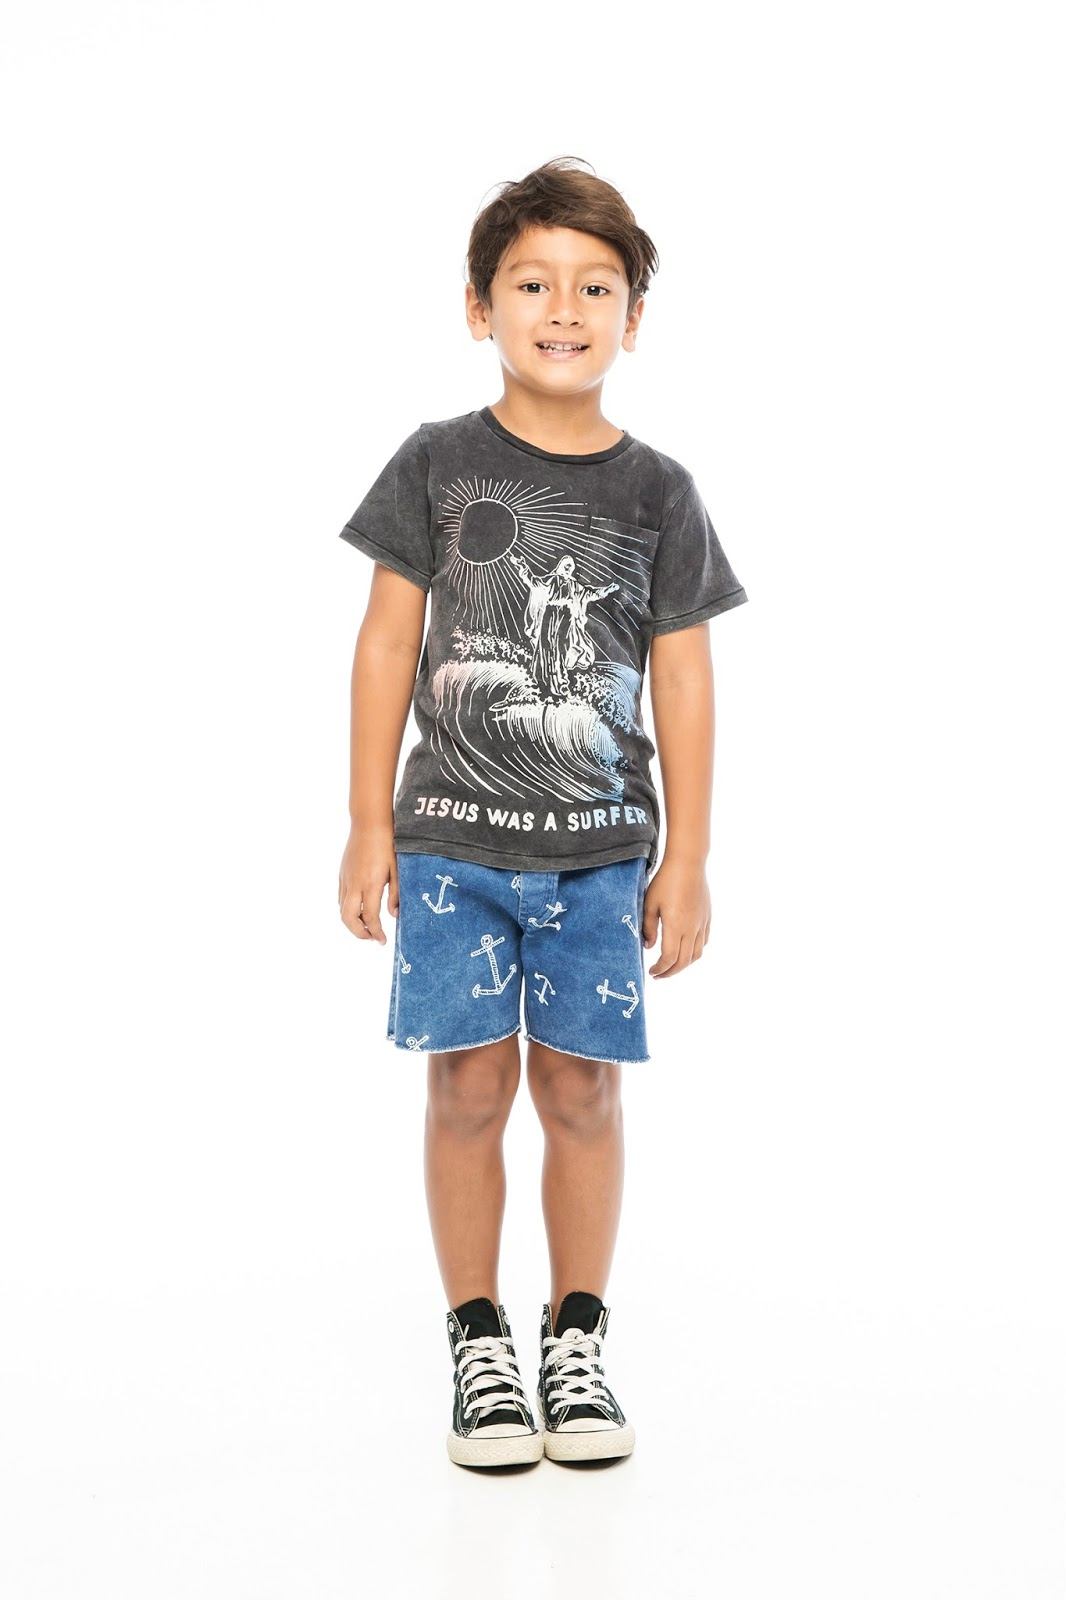 cool clothes for boys from zuttion  yellow dandy